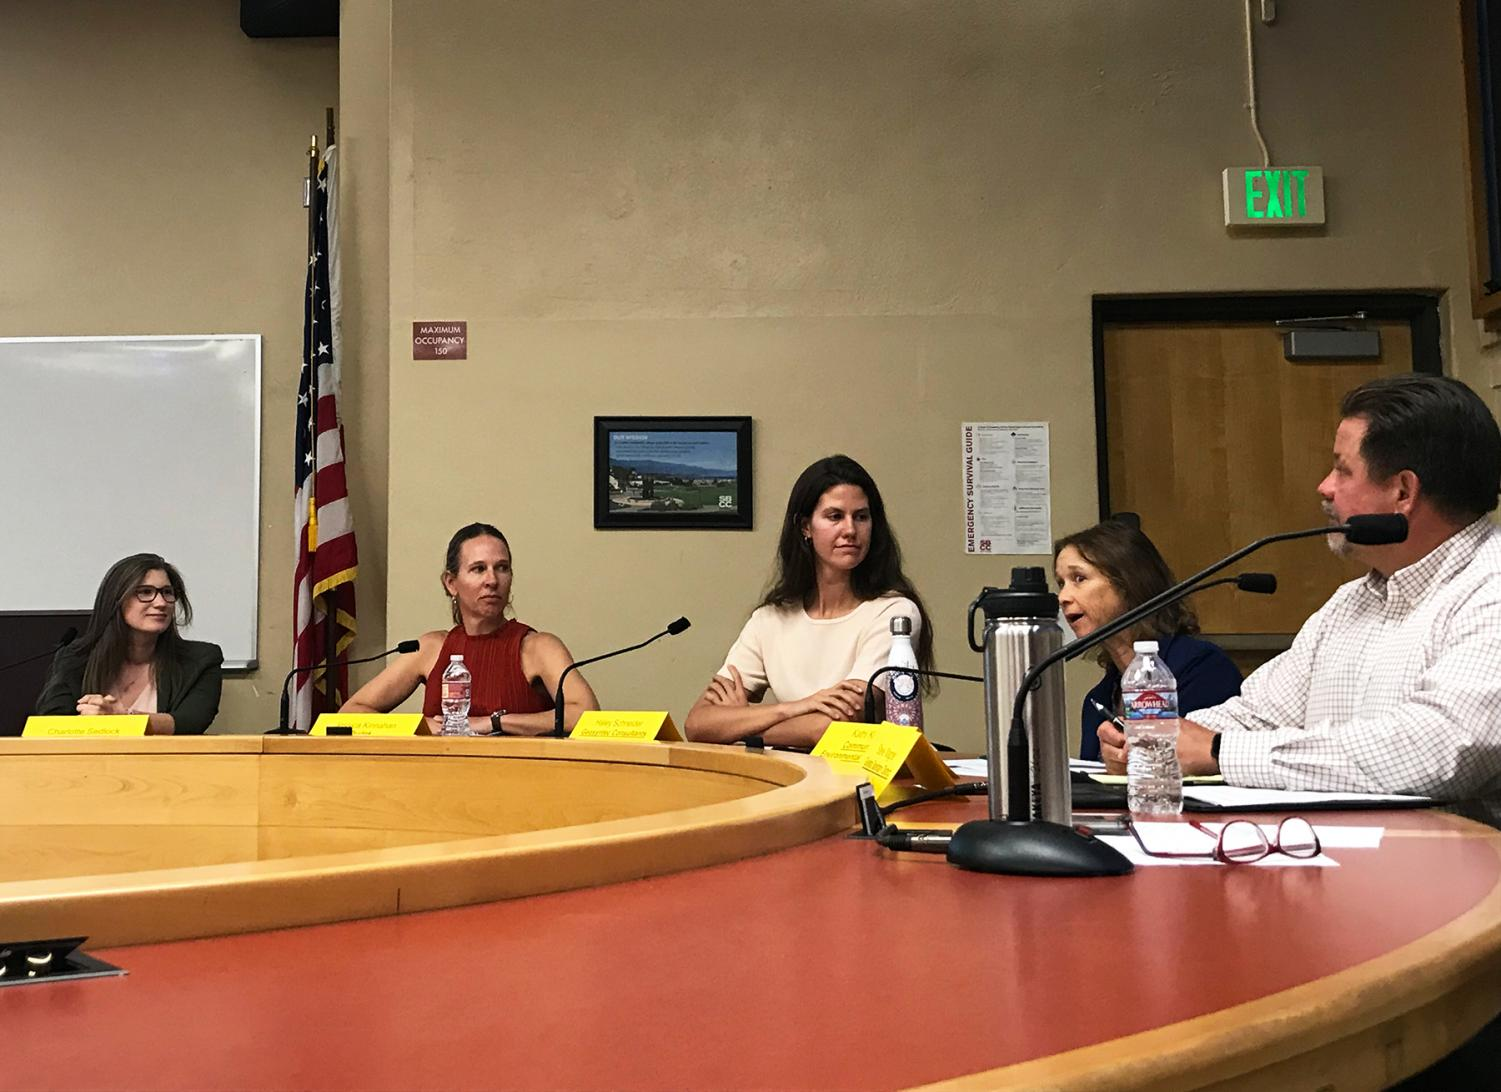 Five panel members talked with students about careers in sustainability on Wednesday, Oct. 23, 2019, in the Administration Building Room 211 at City College in Santa Barbara, Calif.